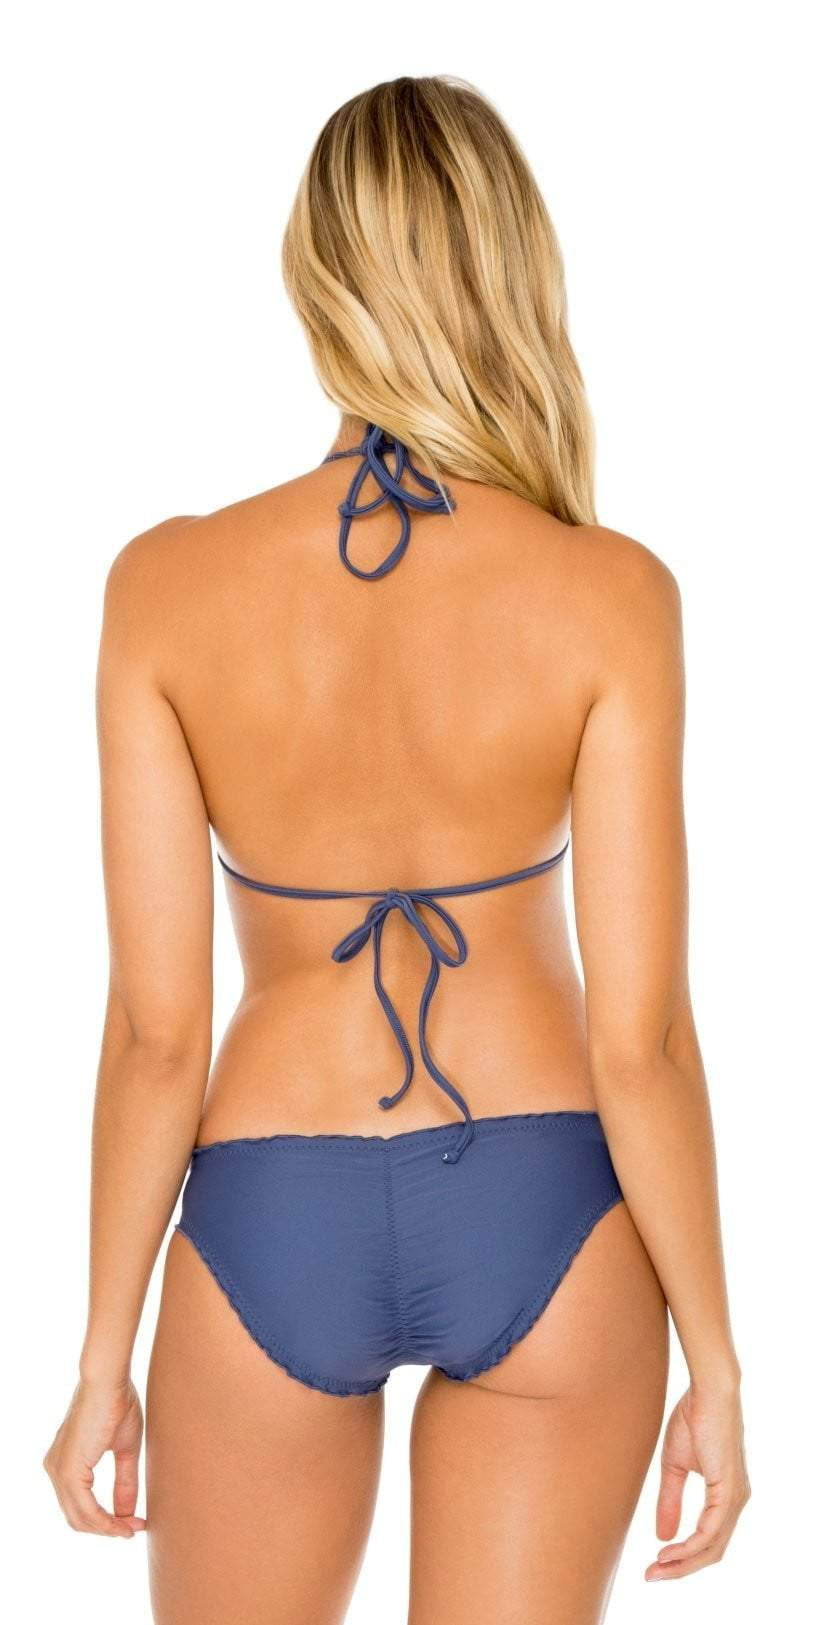 Molded Push Up Bandeau Halter in Blue